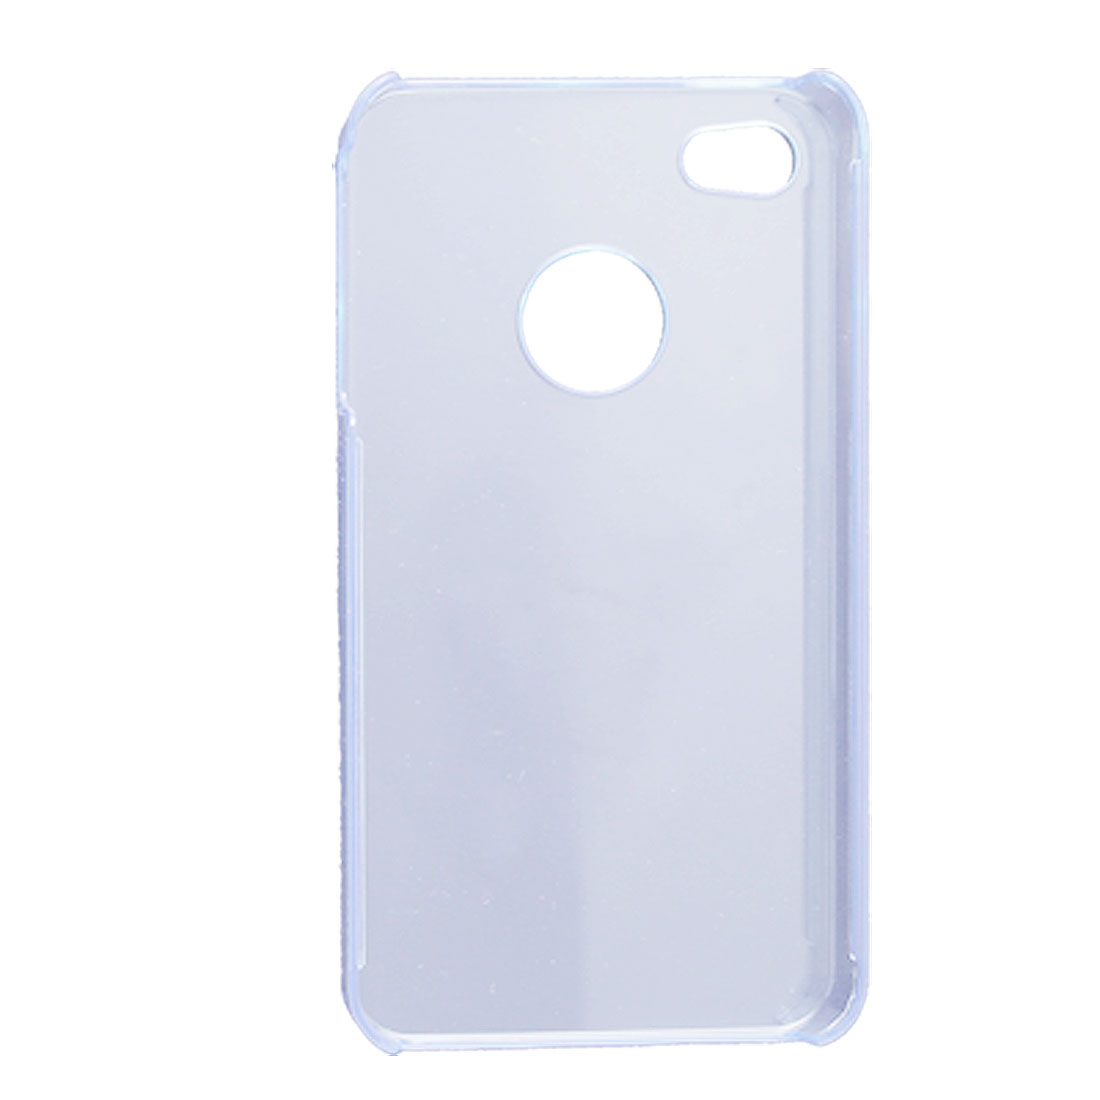 Protective Clear Blue Plastic Case for Apple iPhone 4 4G